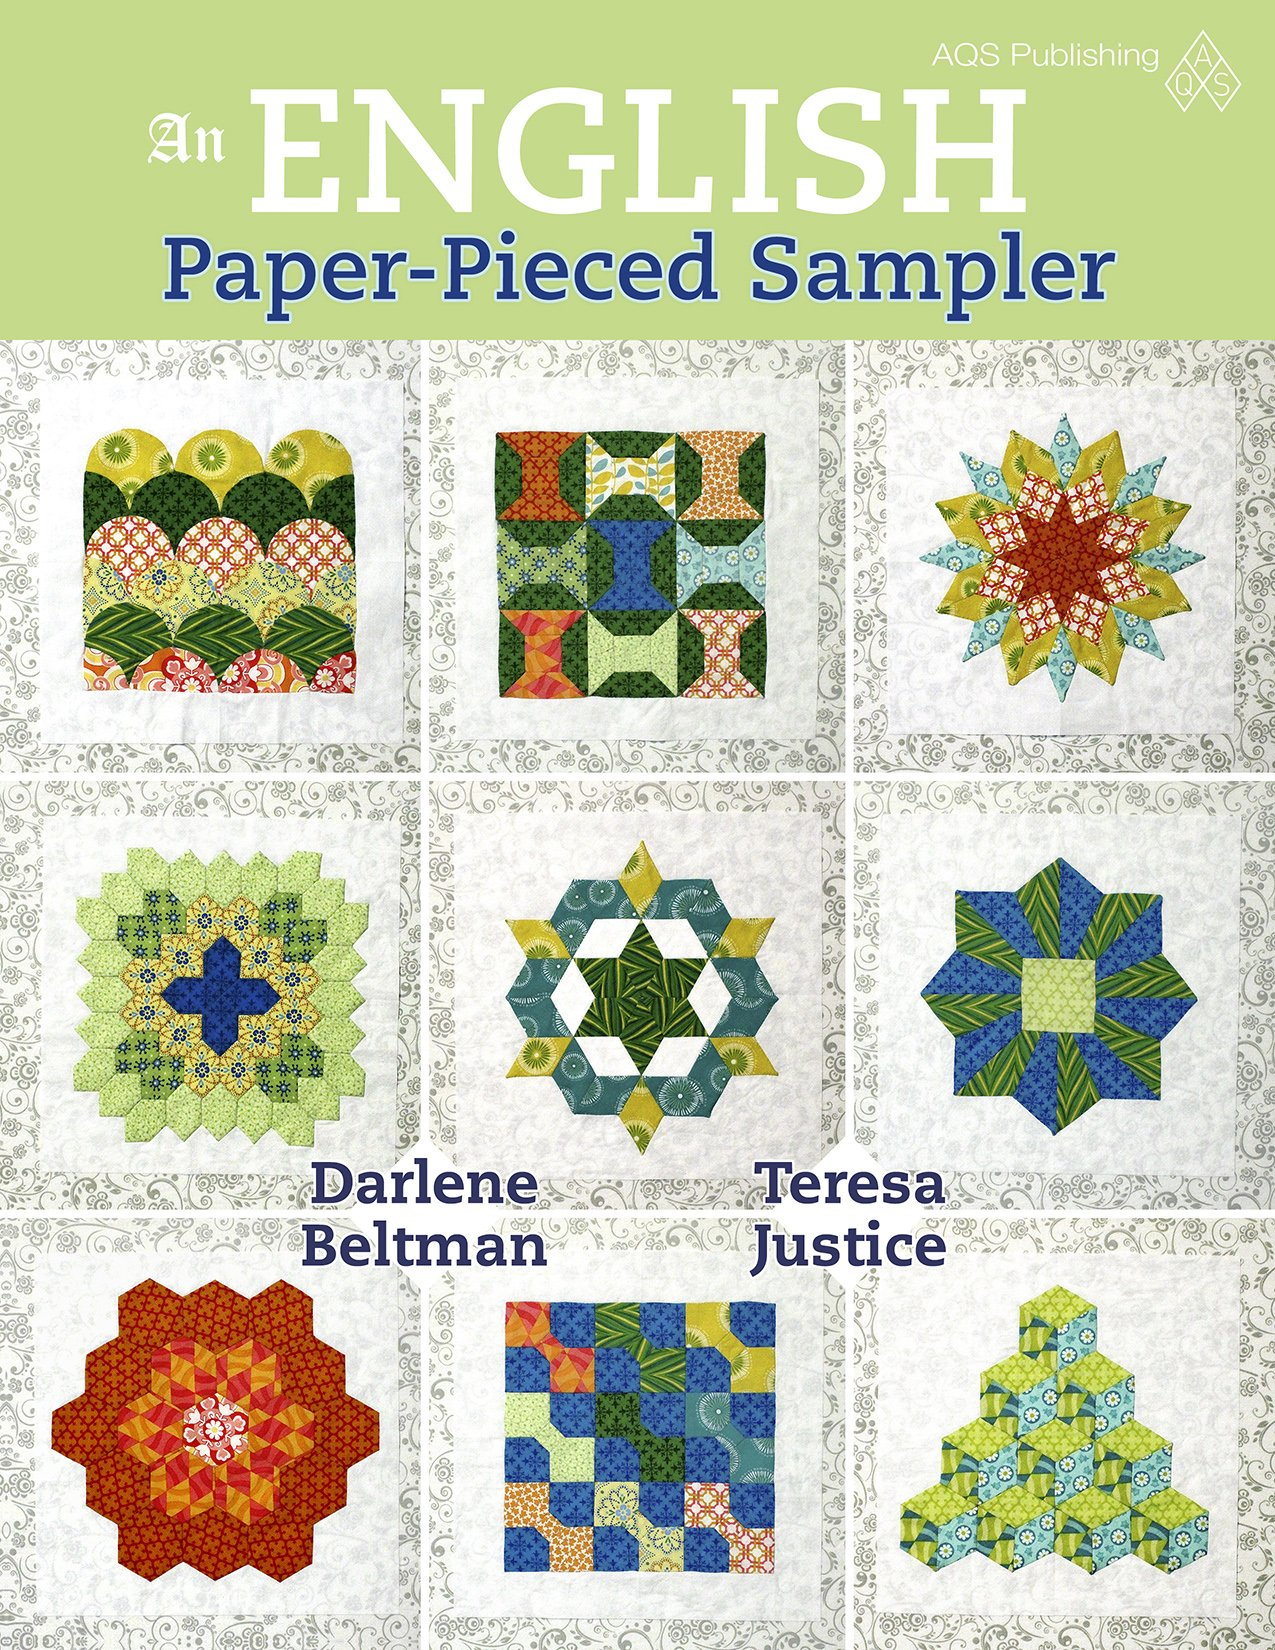 An english paper pieced sampler darlene beltman teresa justice an english paper pieced sampler darlene beltman teresa justice 9781604603972 amazon books pronofoot35fo Image collections